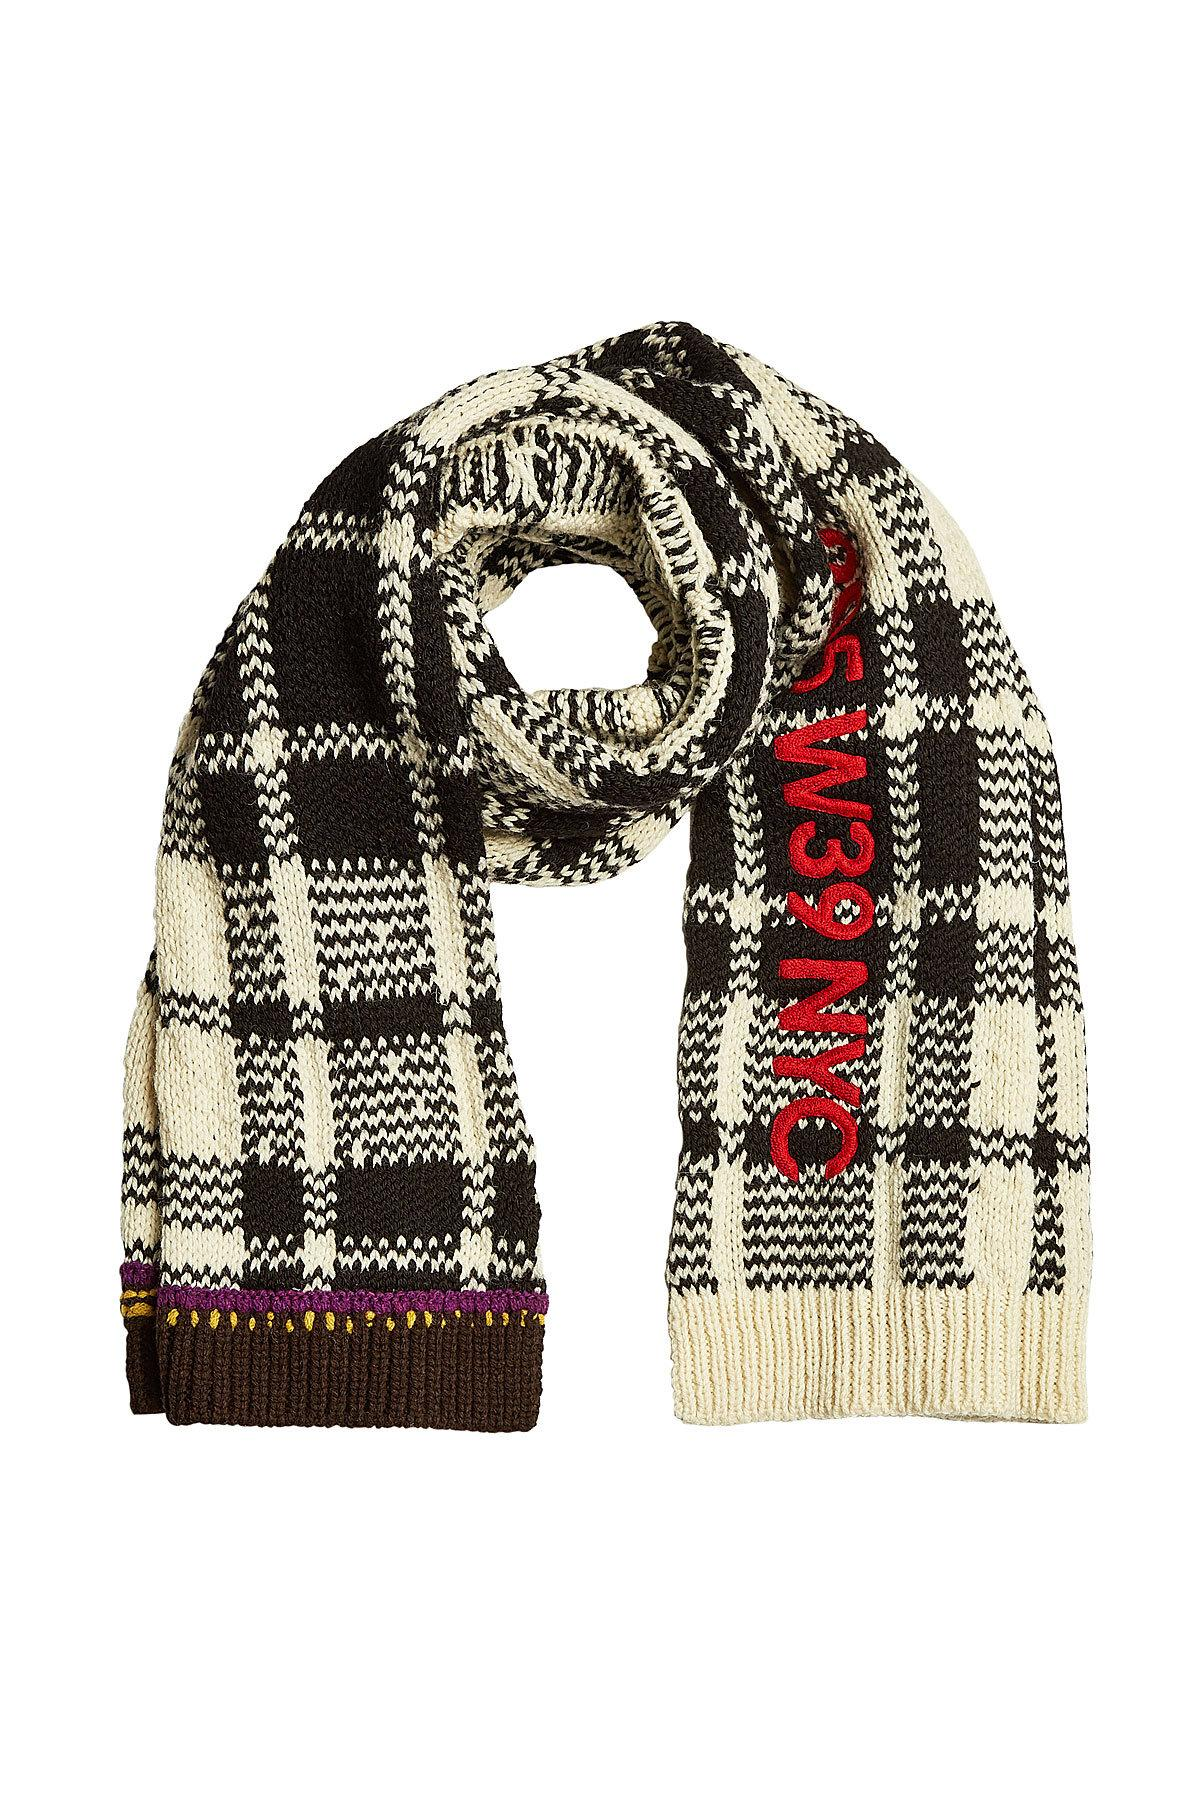 Calvin Klein 205W39Nyc Wool Scarf In Multicolored